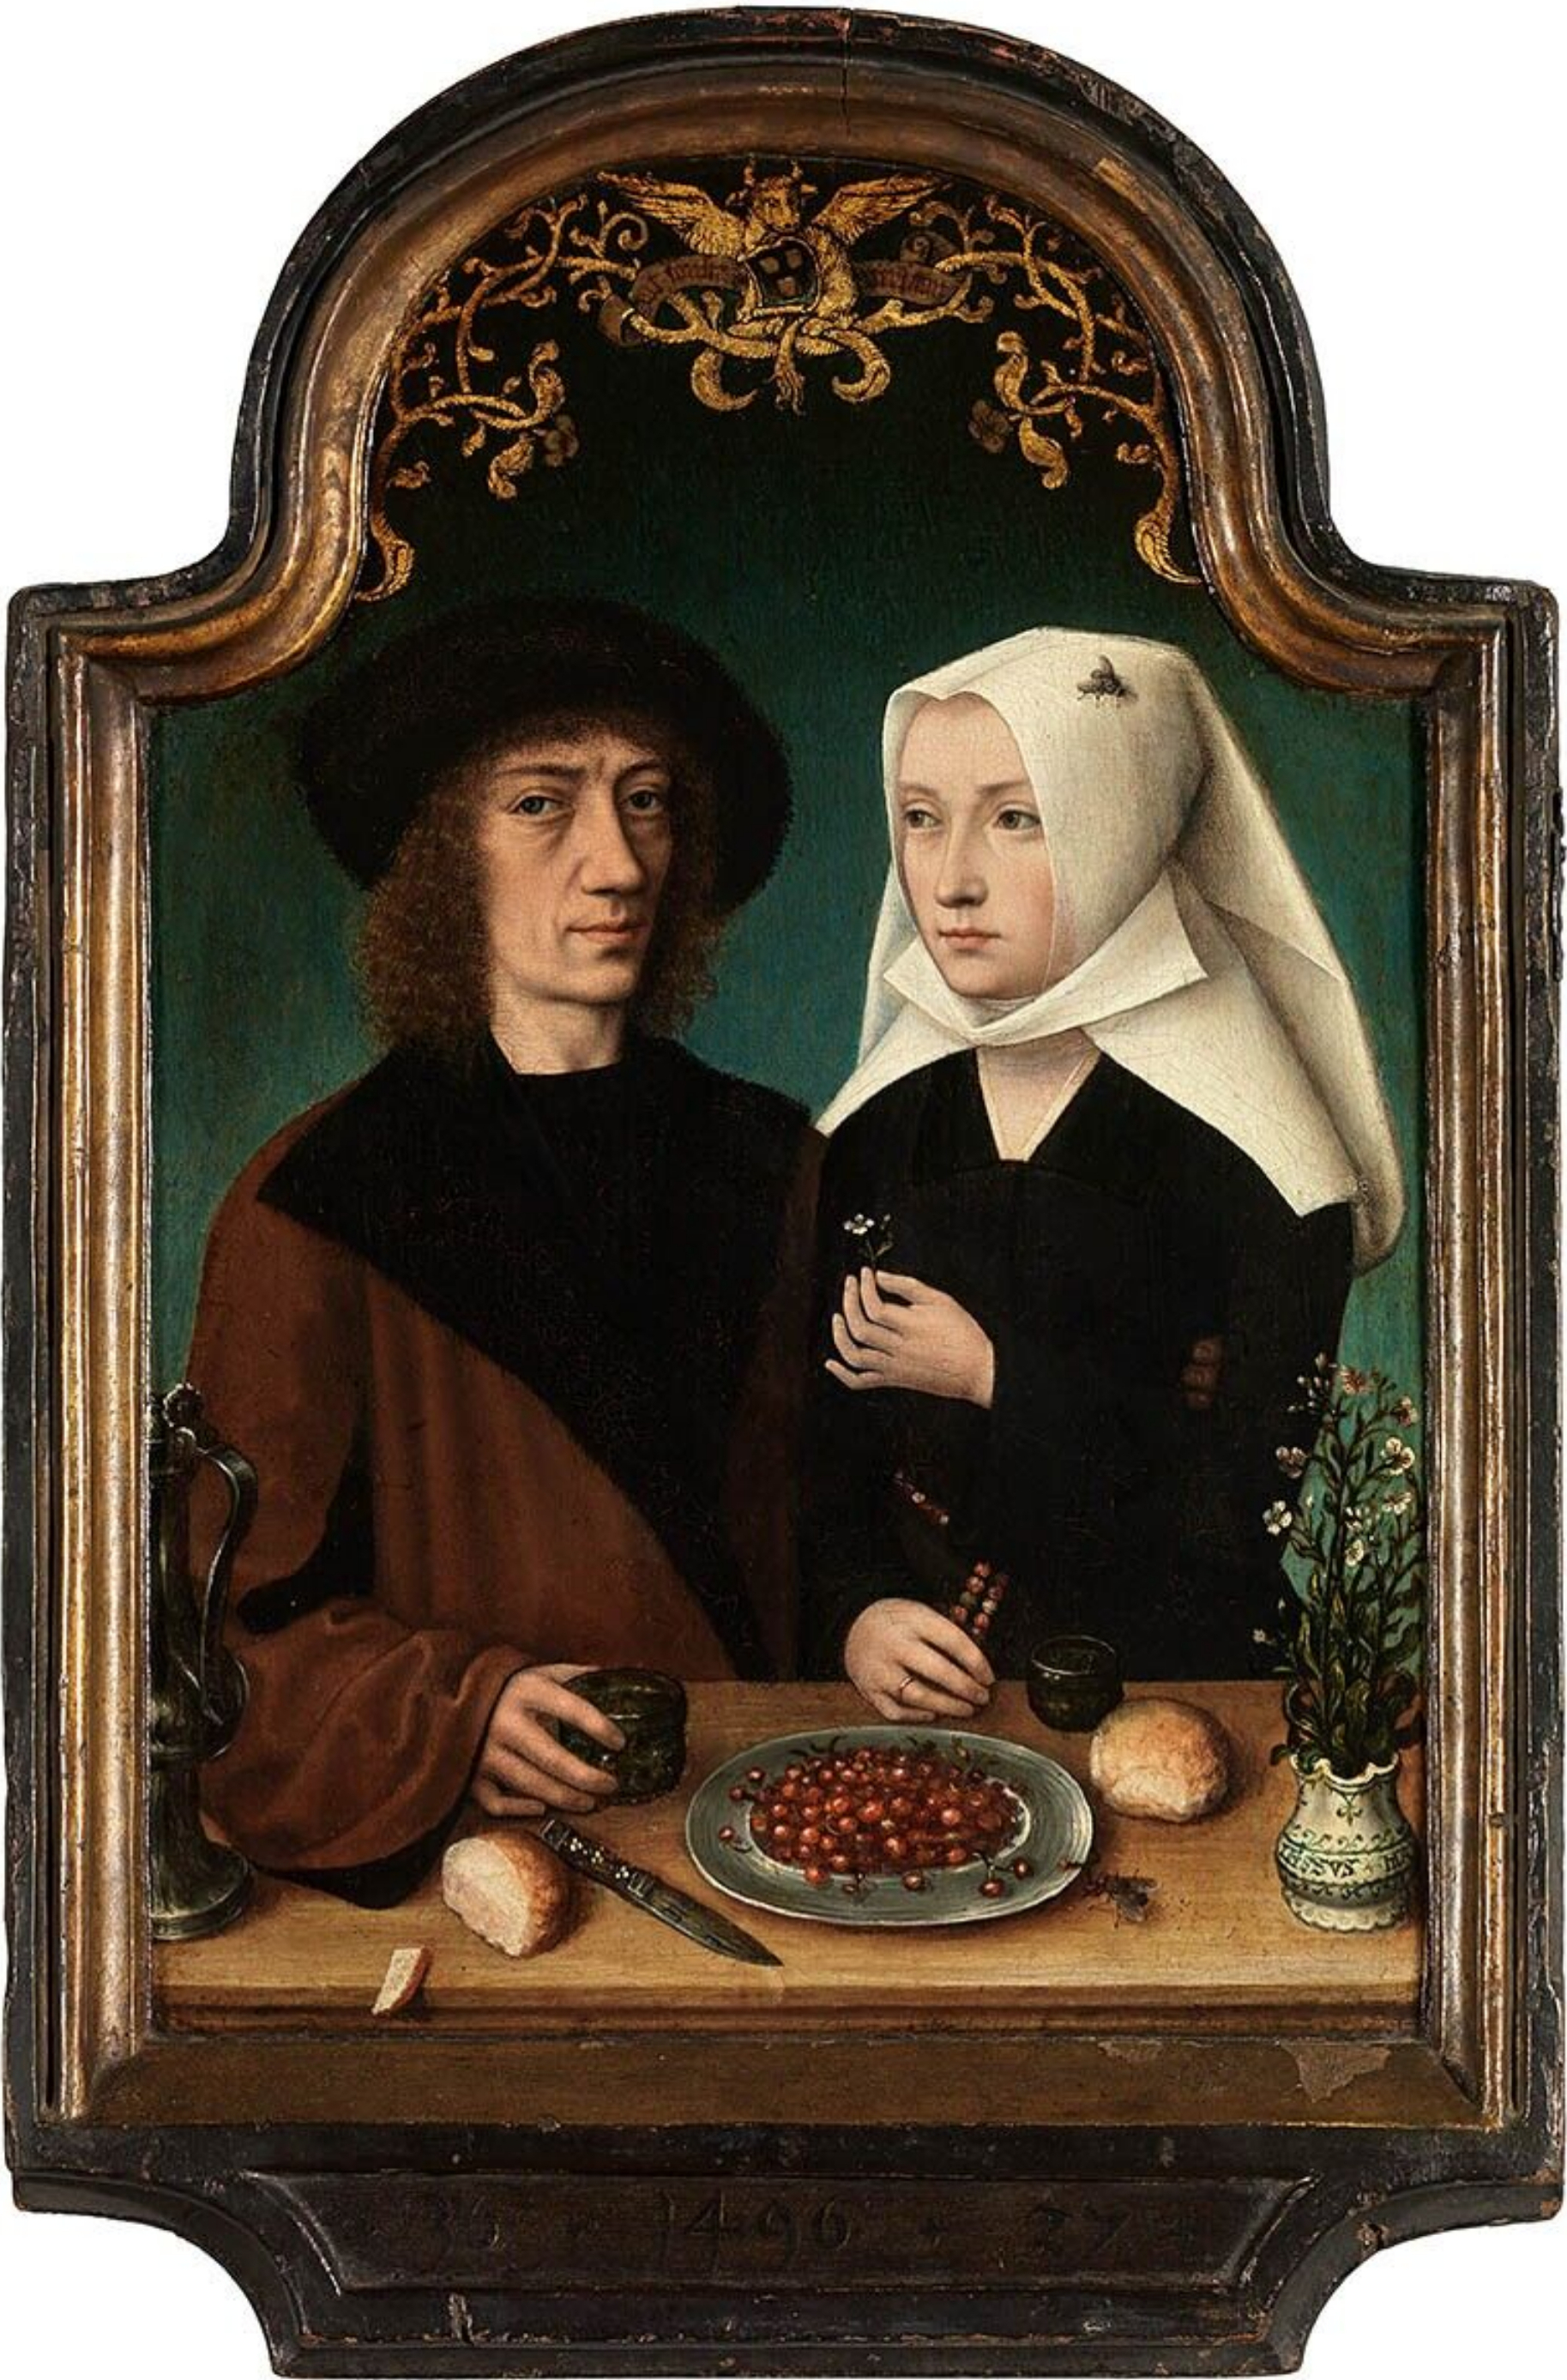 File:Frankfurt master-artist and wife.jpg